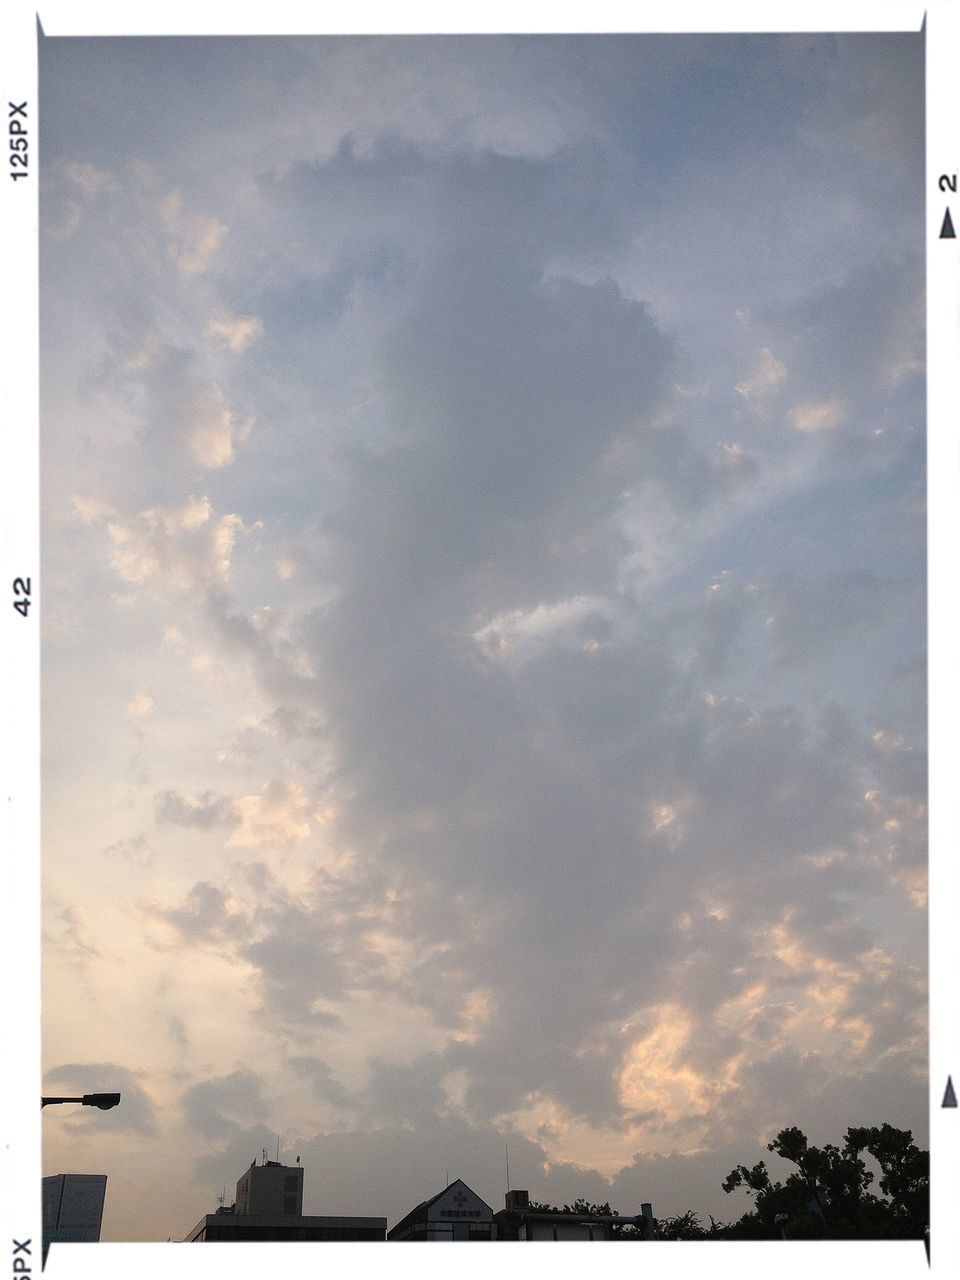 sky, cloud - sky, no people, built structure, outdoors, low angle view, building exterior, silhouette, architecture, beauty in nature, sunset, nature, scenics, backgrounds, day